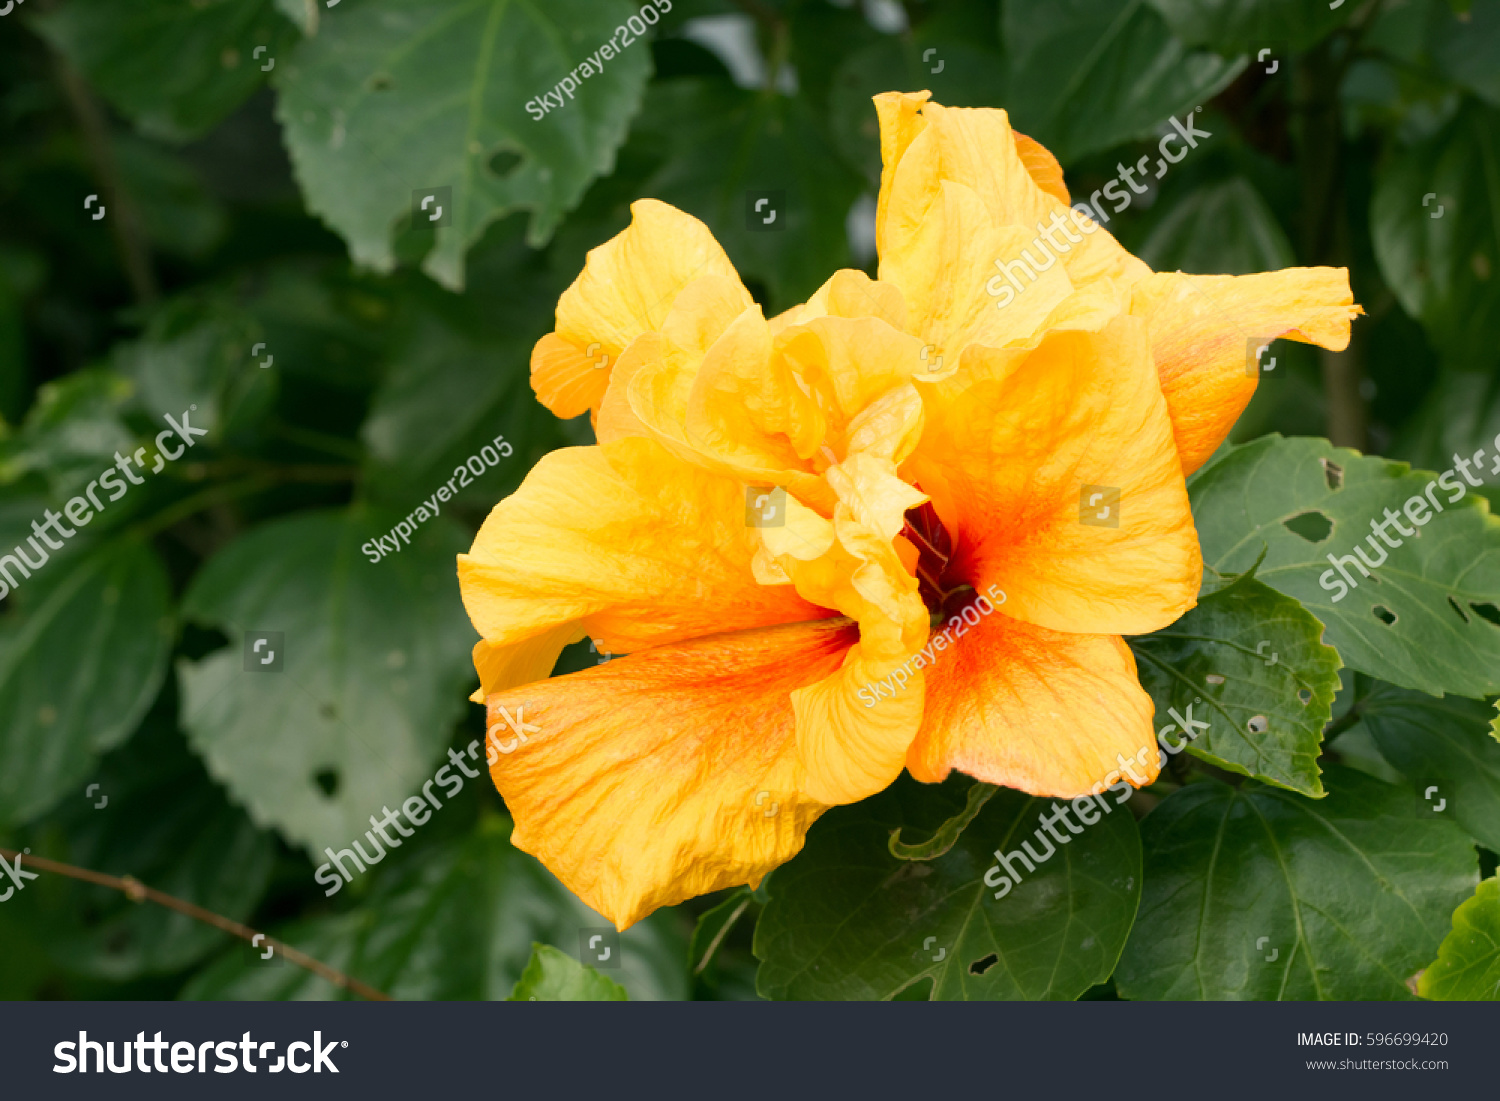 Yellow chinese hibiscus double flower bloominghibiscus stock photo yellow chinese hibiscus double flower bloominghibiscus rosa sinensis izmirmasajfo Image collections